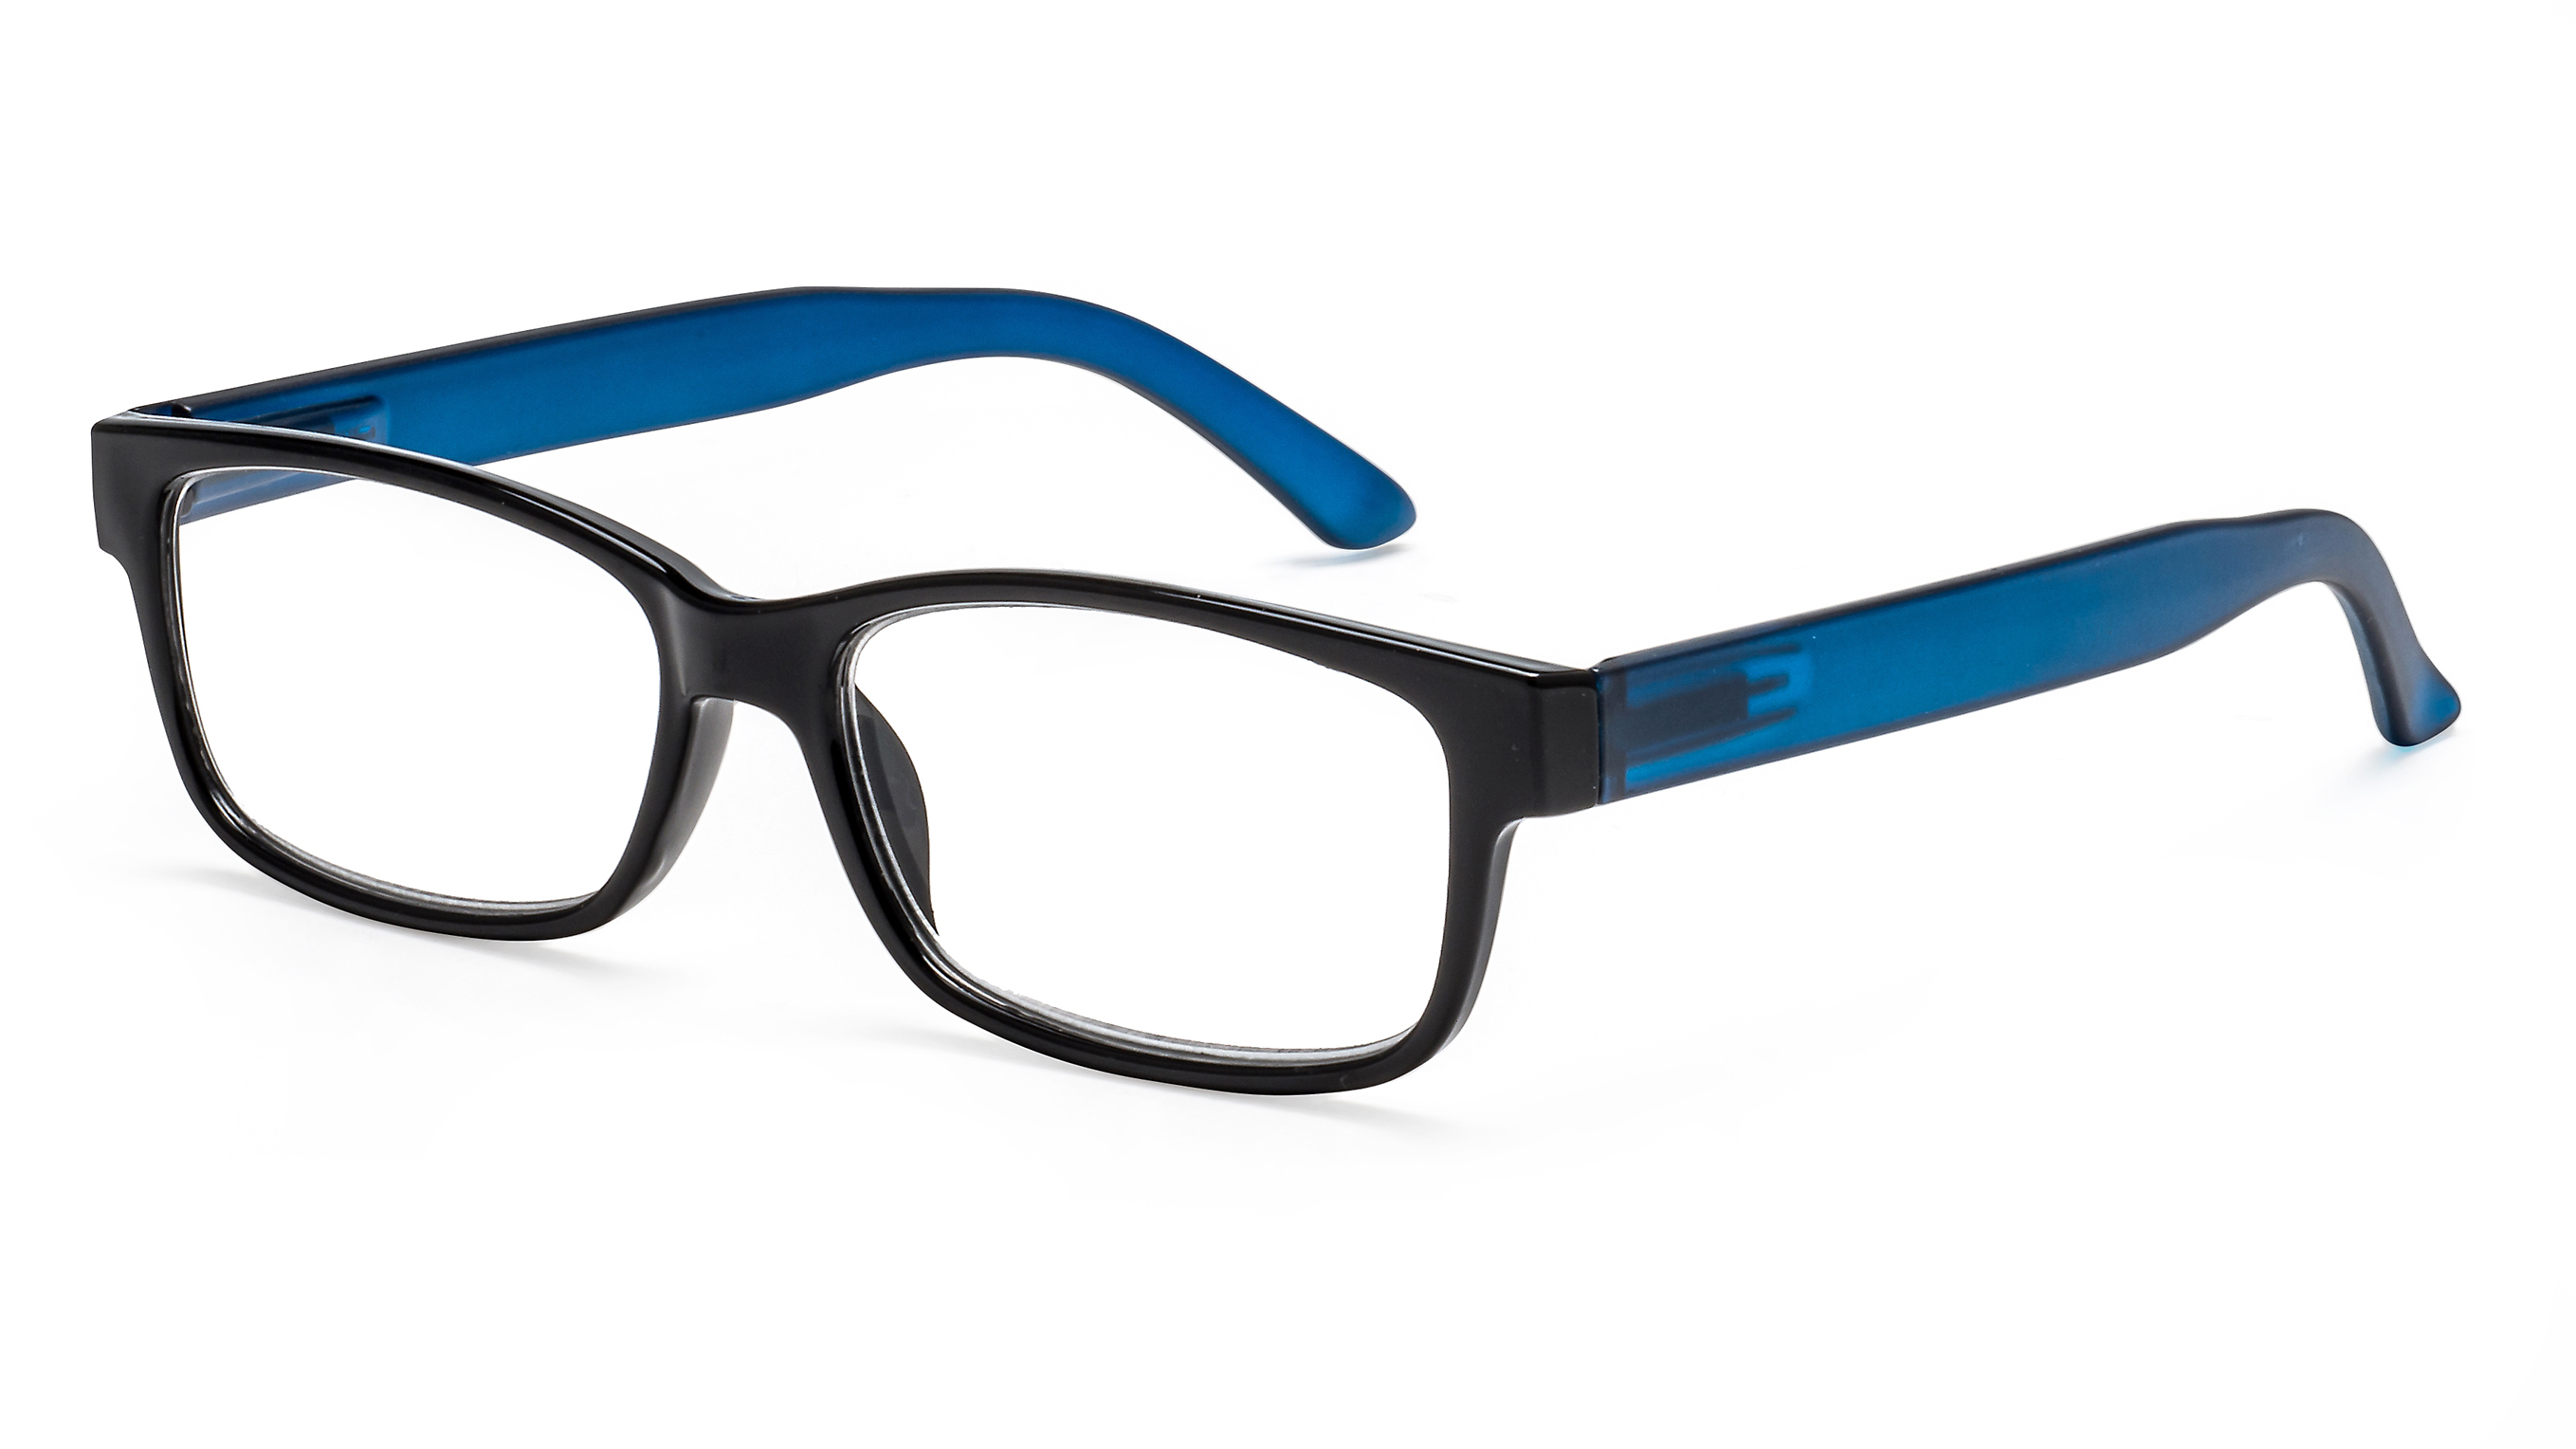 main view reading glasses oslo blue